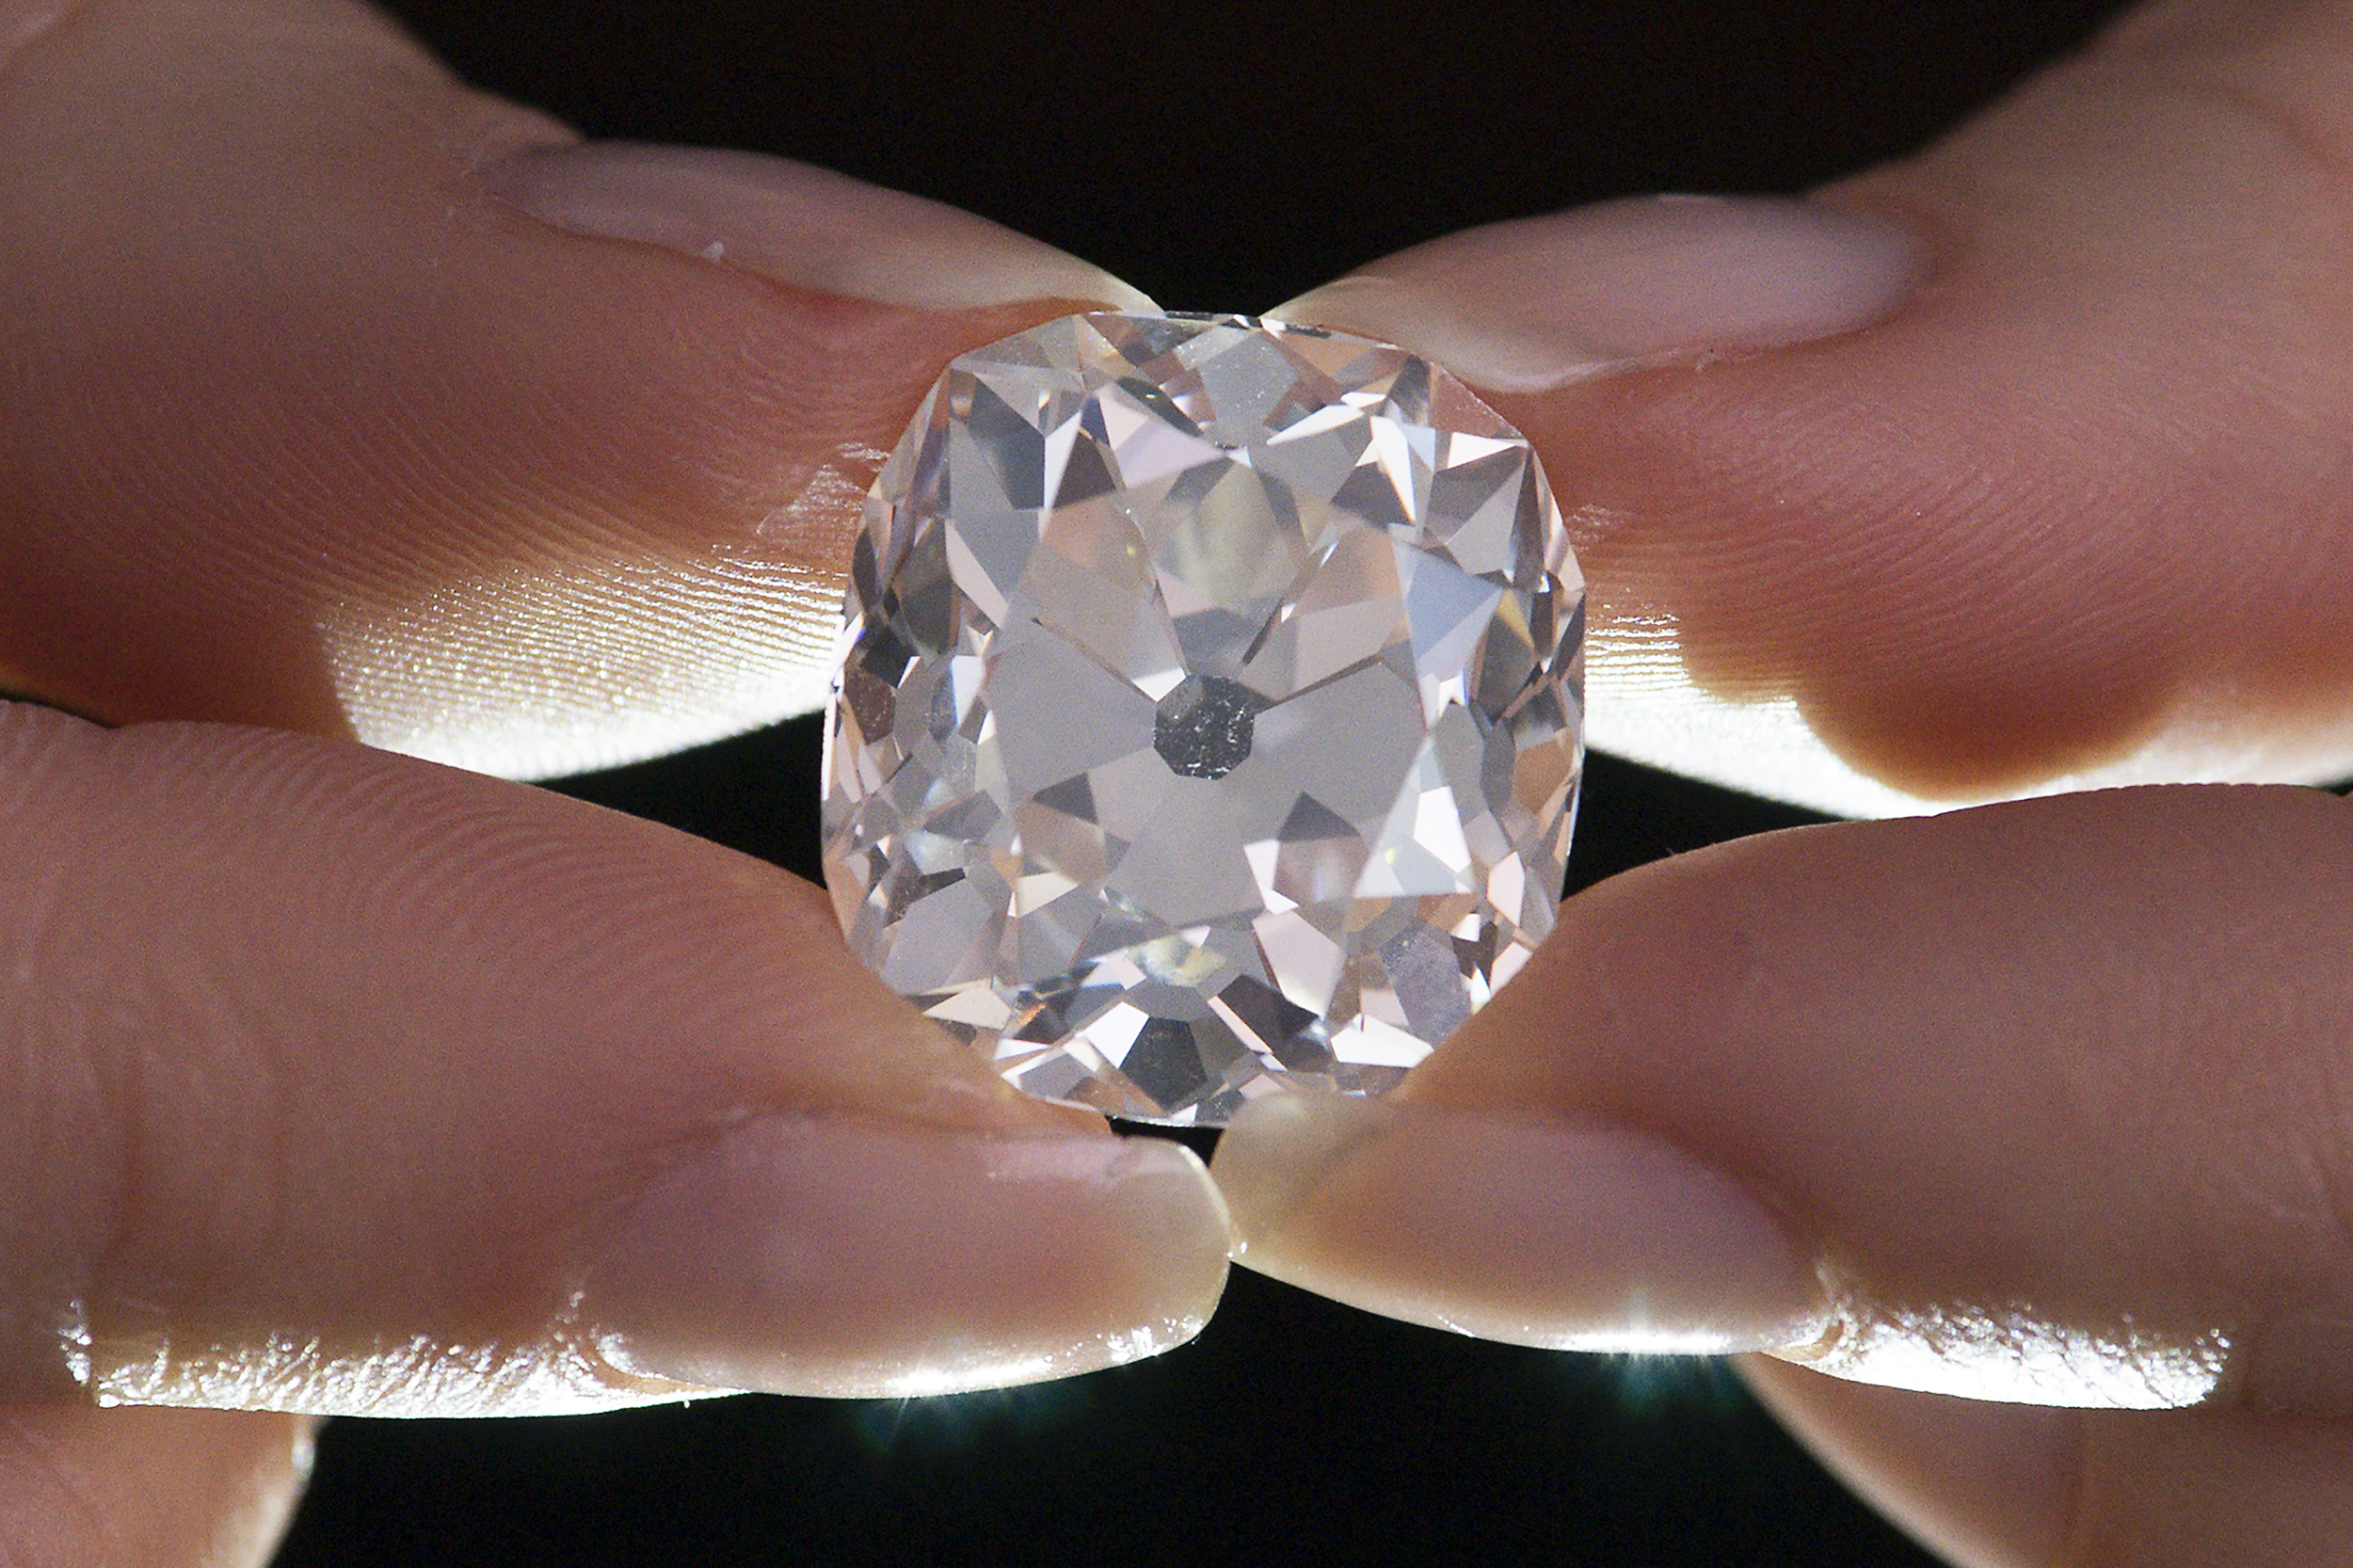 A member of Sotheby's staff poses holding a 26.27 carat, cushion-shaped, white diamond, for sale at Sotheby's auction house in London.